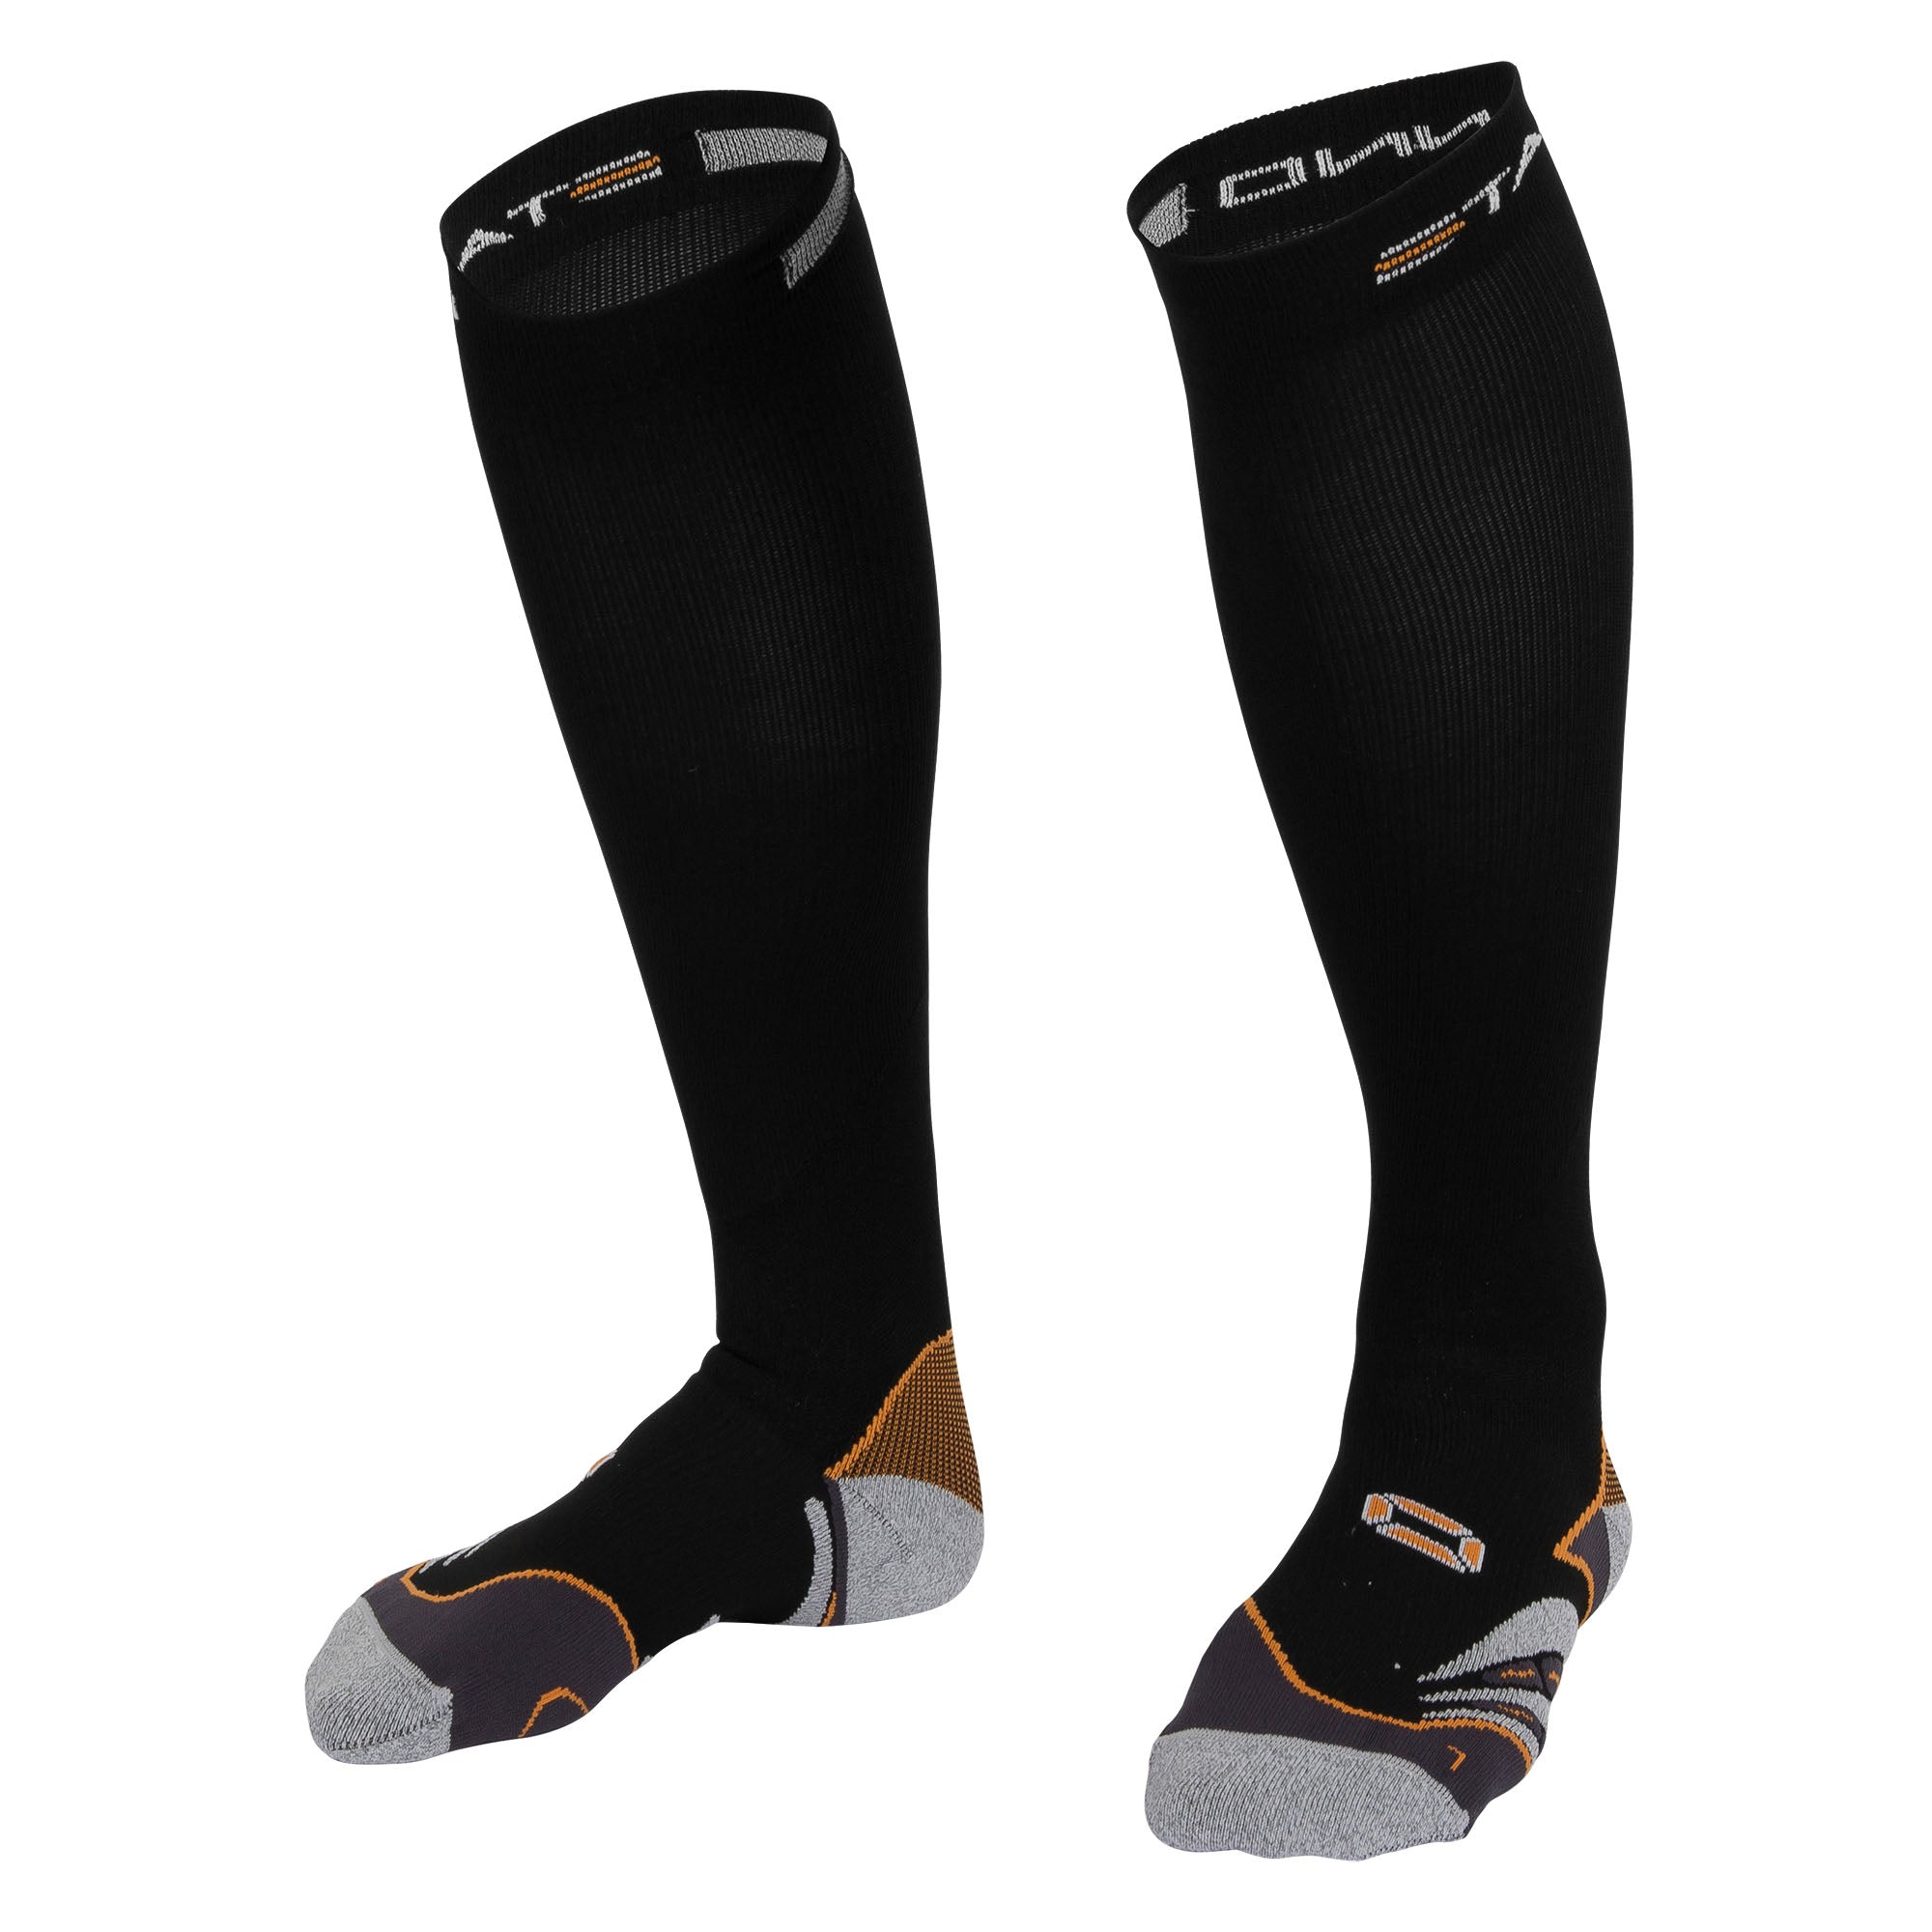 Stanno compression socks in black